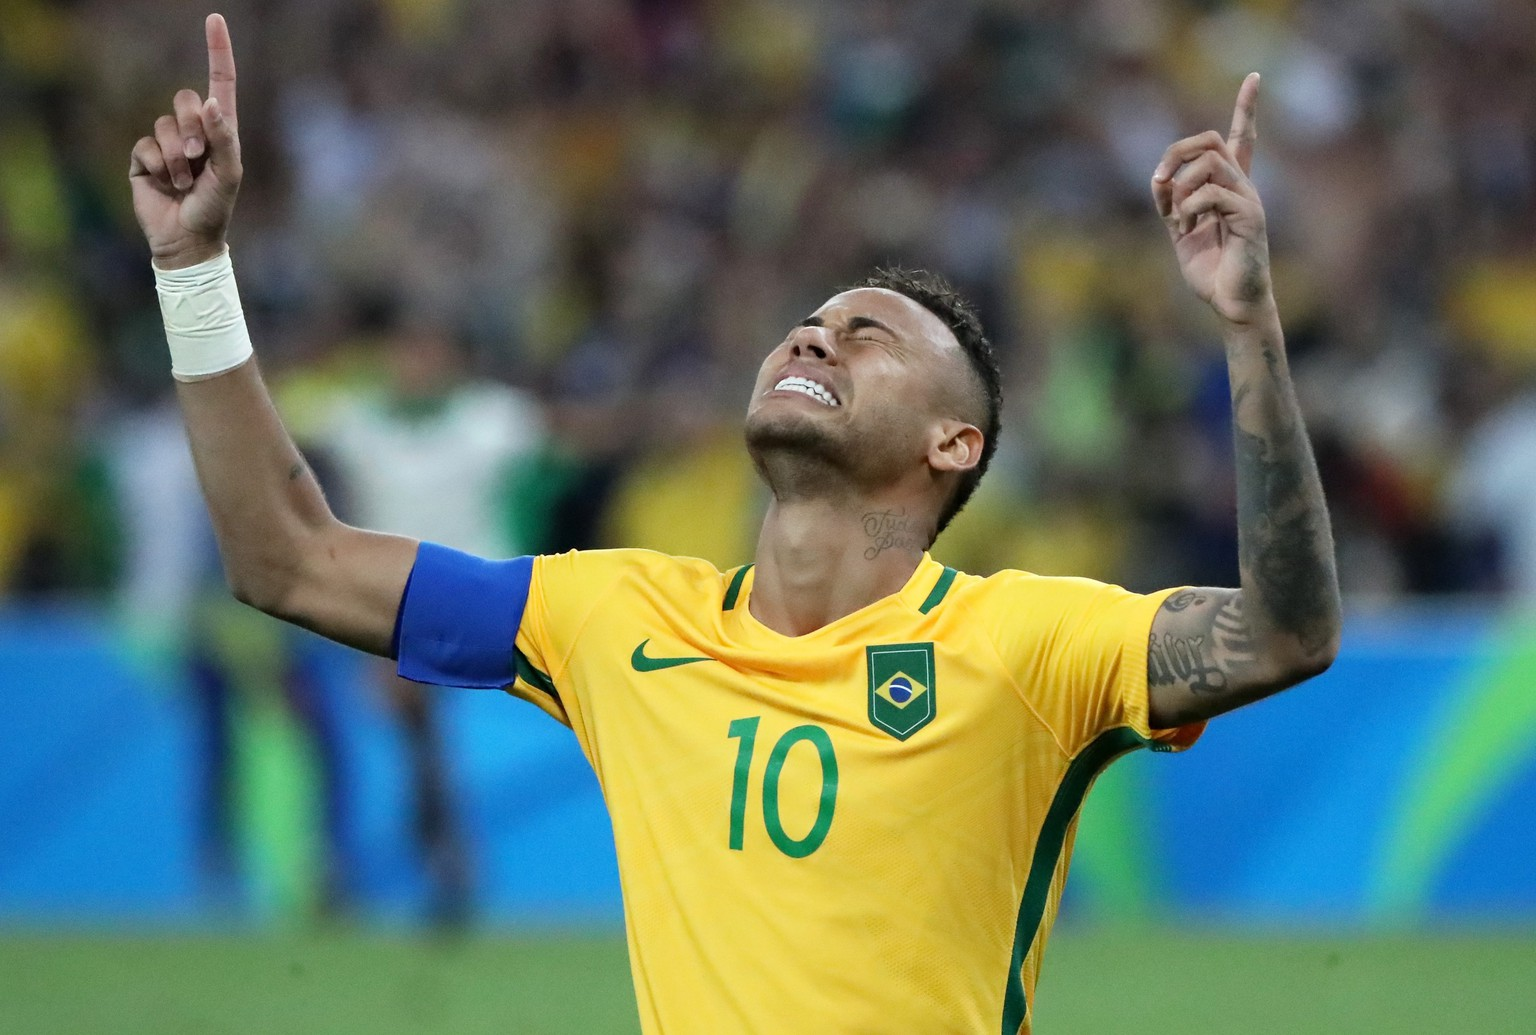 epaselect epa05503543 Neymar of Brazil celebrates winning the penalty shoot-out during the men's Gold Medal match between Brazil and Germany of the Rio 2016 Olympic Games Soccer tournament at the Maracana Stadium in Rio de Janeiro, Brazil, 20 August 2016.  EPA/ALEJANDRO ERNESTO